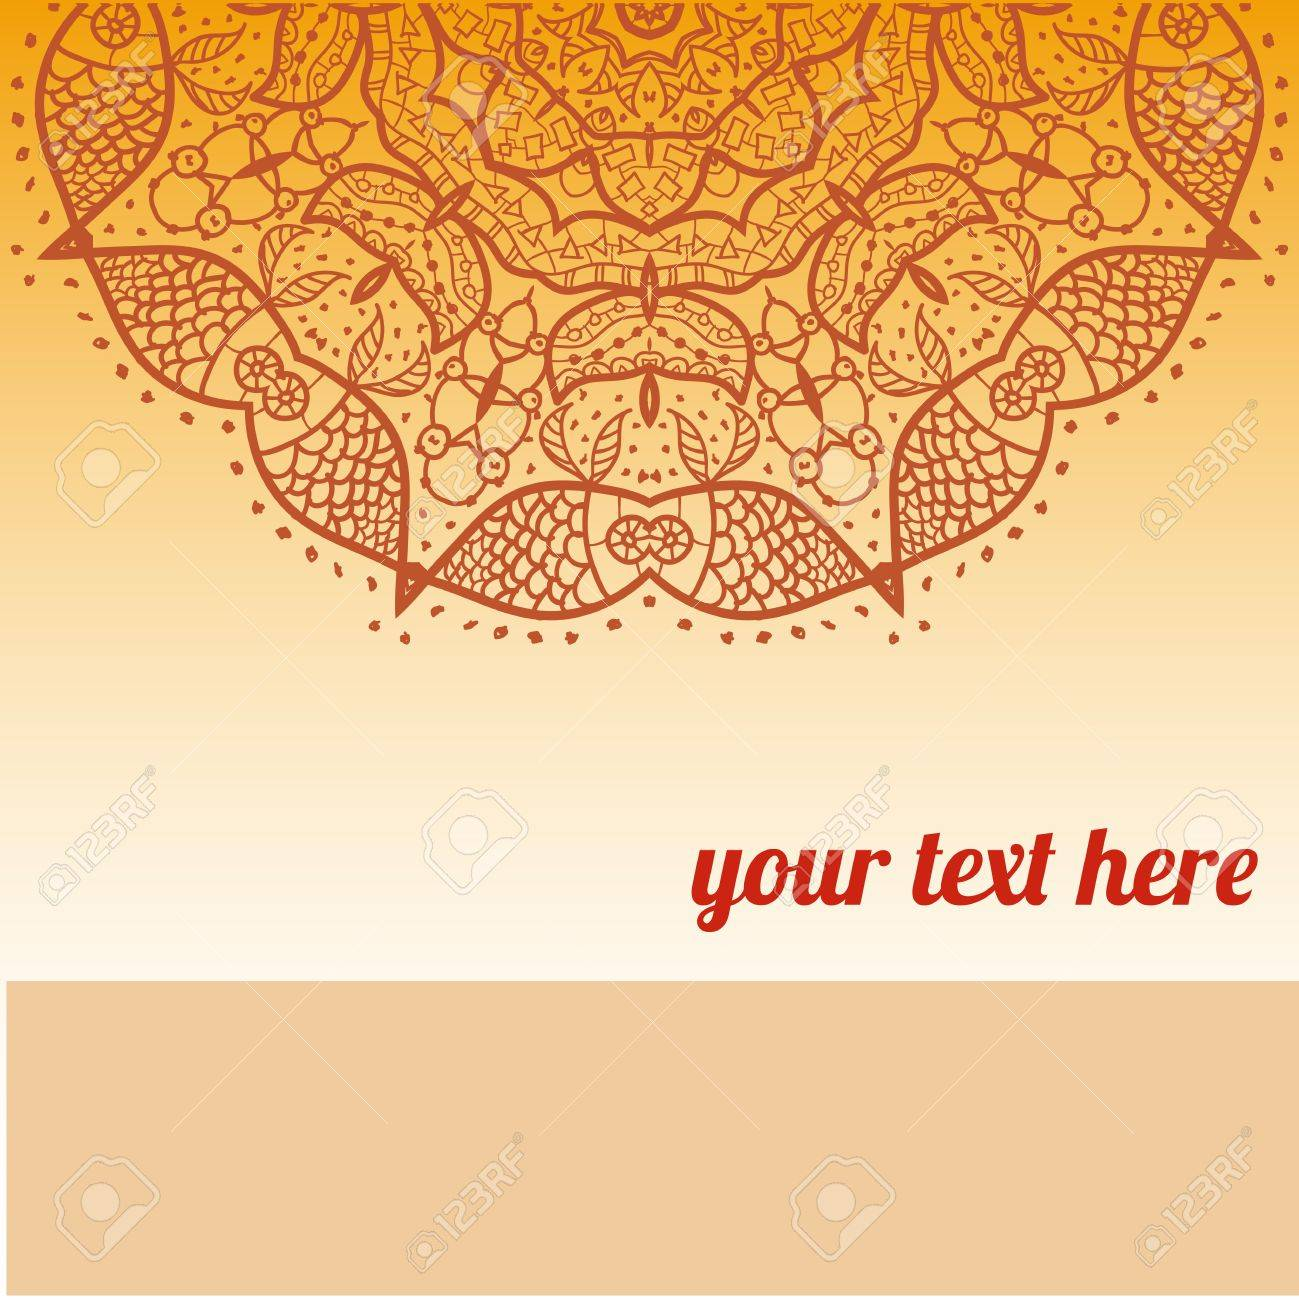 ornate frame with sample text  Perfect as invitation or announcement  Background pattern is included as seamless  All pieces are separate  Easy to change colors and edit Stock Vector - 18471912